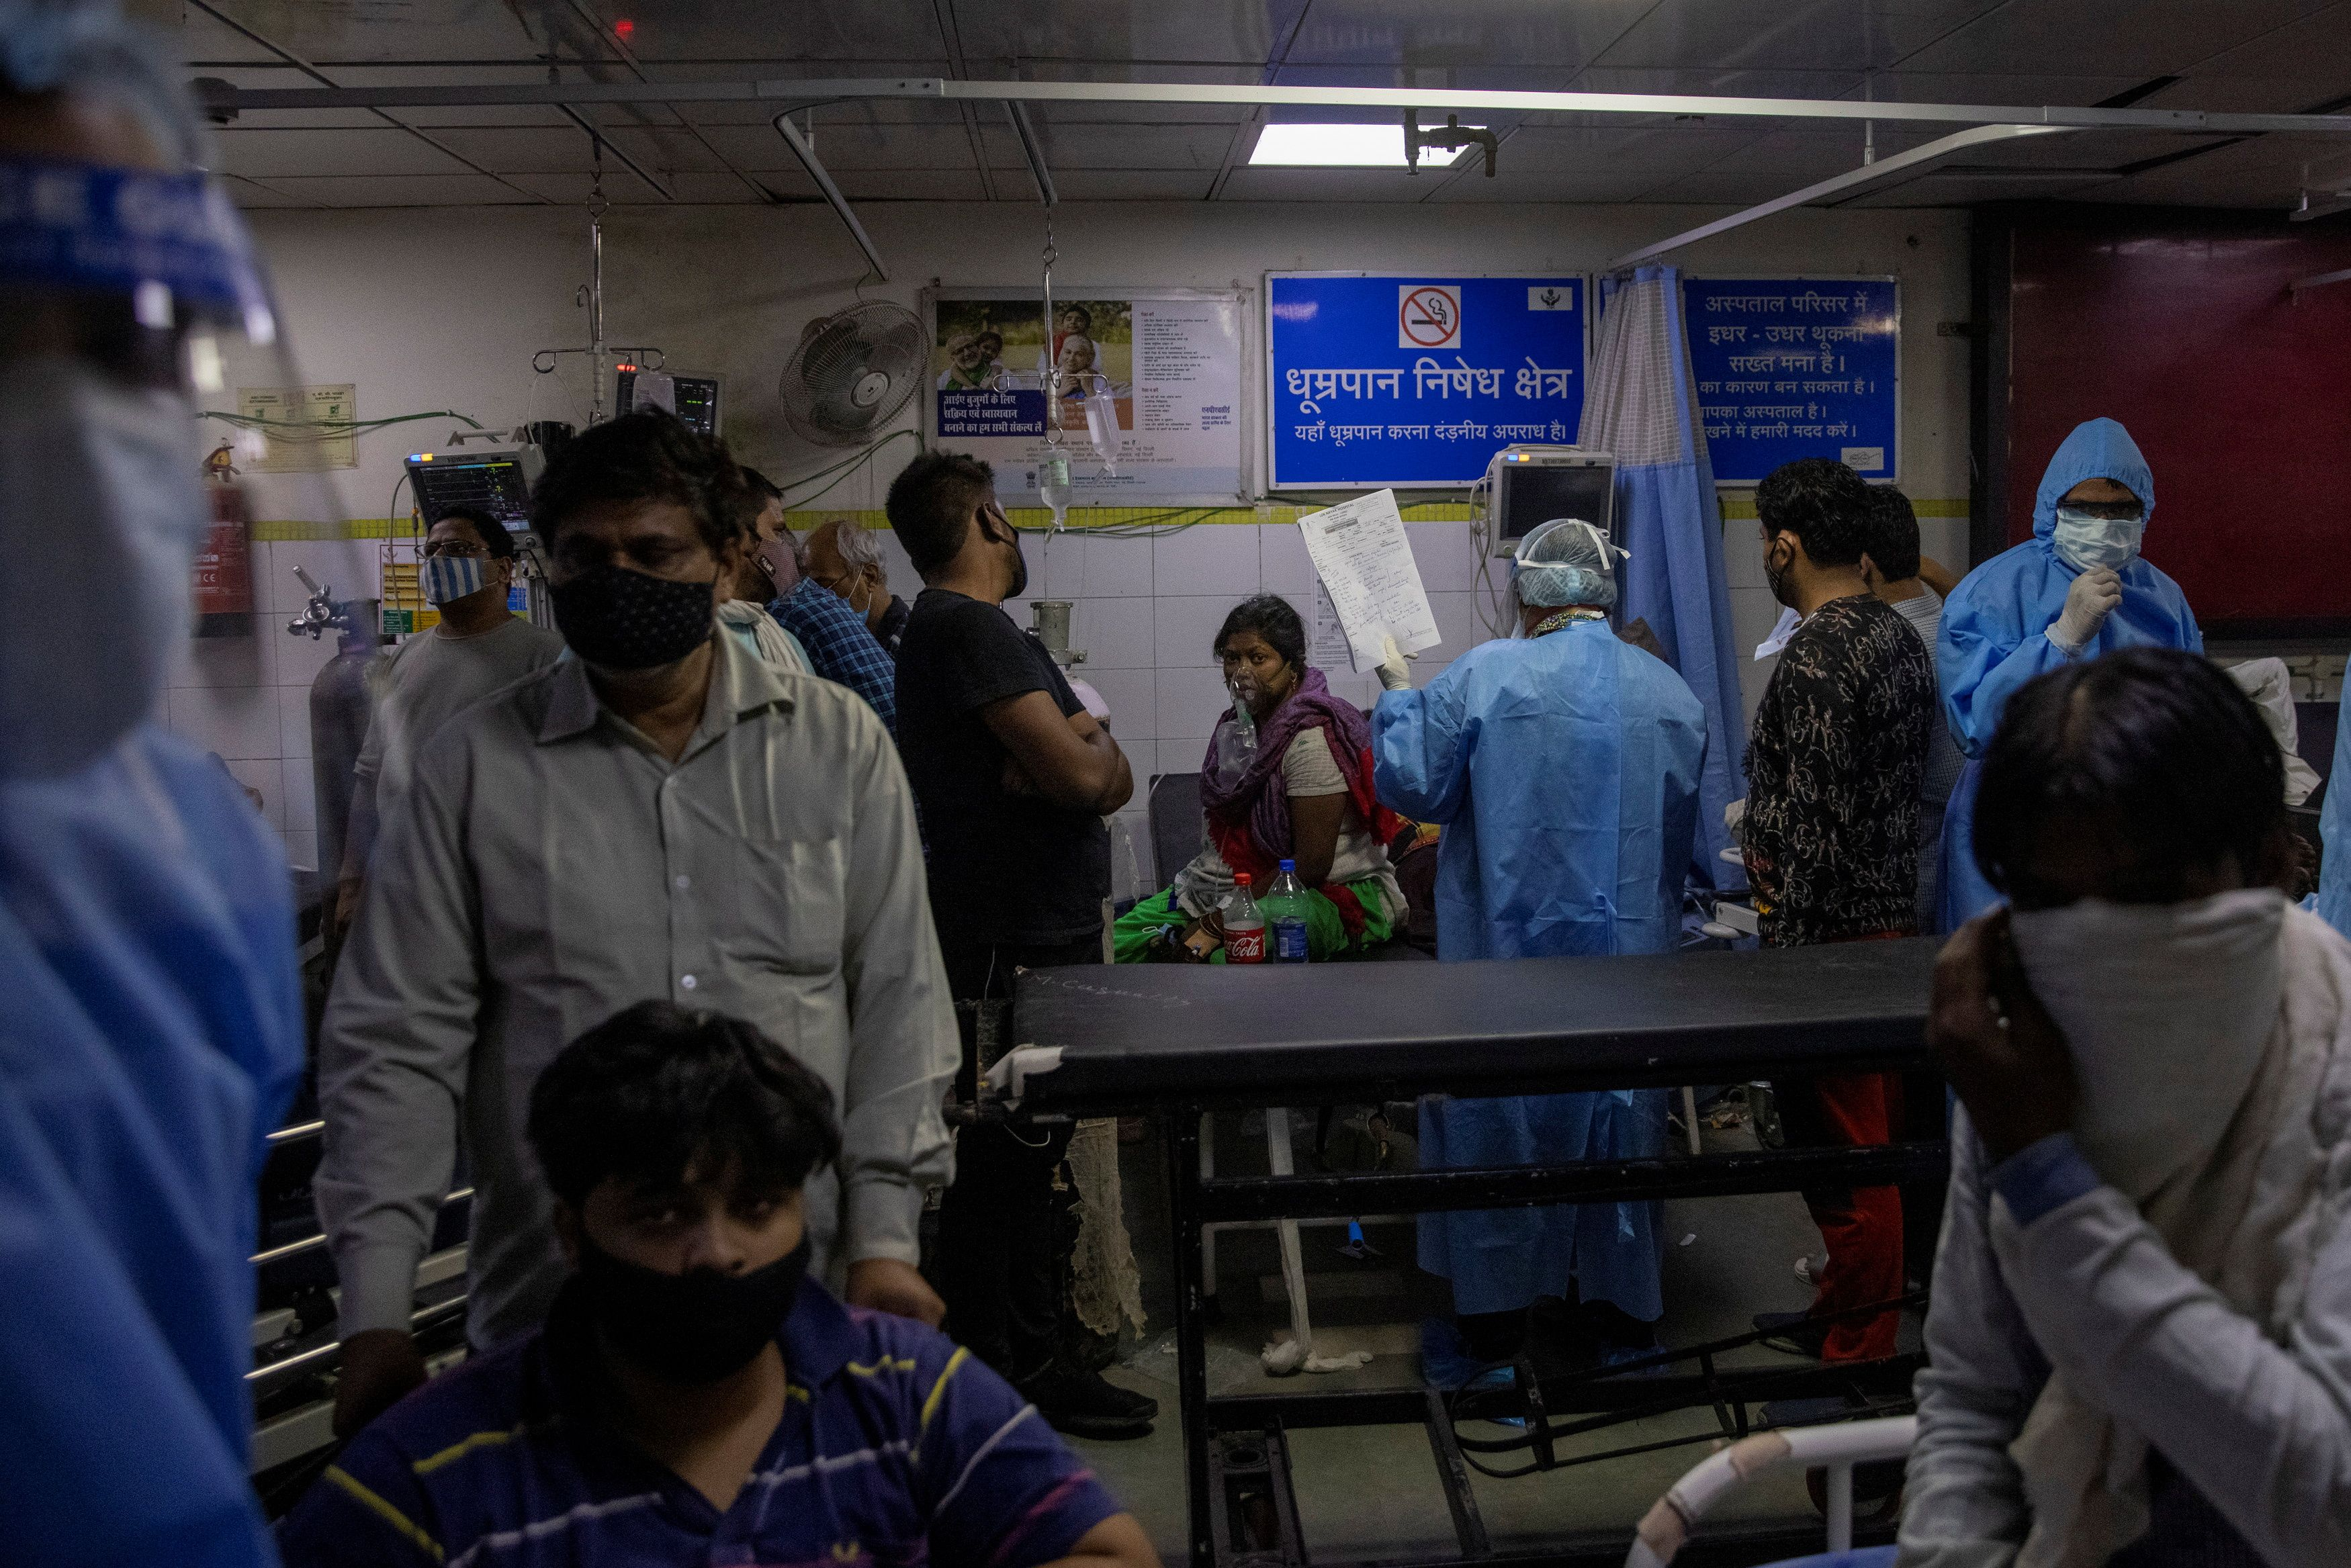 Patients suffering from the coronavirus disease (COVID-19) get treatment at the casualty ward in Lok Nayak Jai Prakash (LNJP) hospital, amidst the spread of the disease in New Delhi, India April 15, 2021. REUTERS/Danish Siddiqui